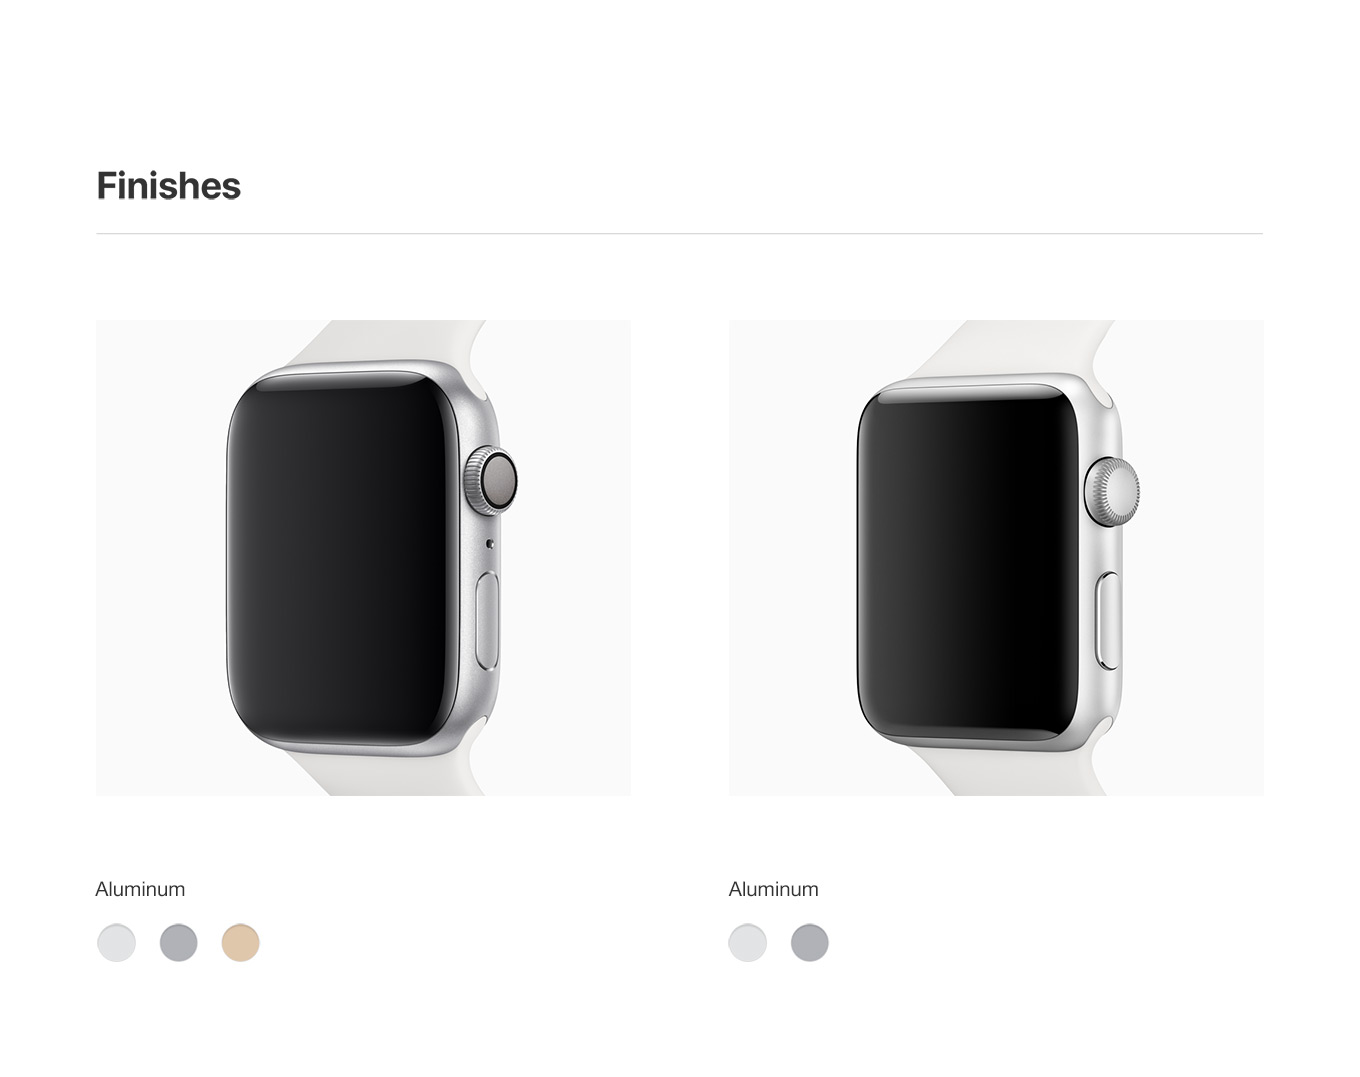 Finishes - Apple Watch Comparison Chart